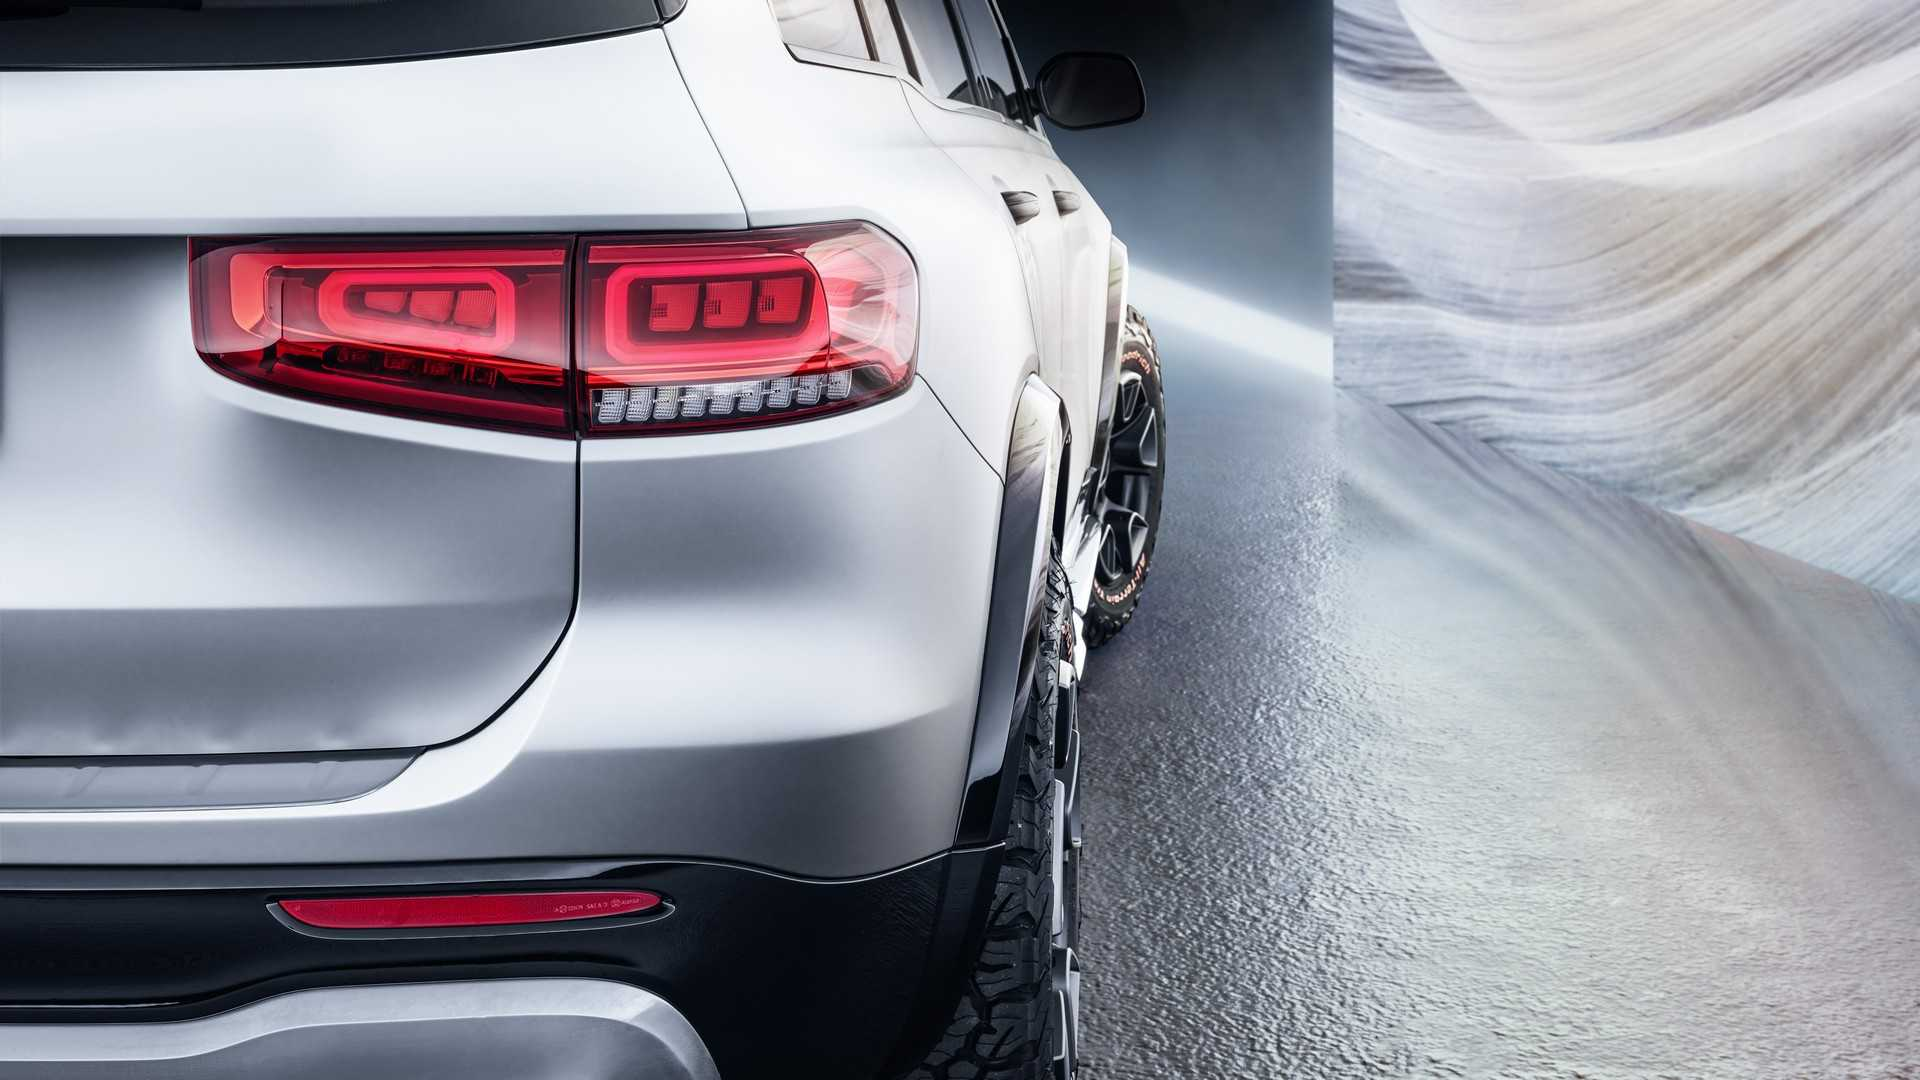 2019 Mercedes-Benz GLB Concept Tail Light Wallpaper (13)